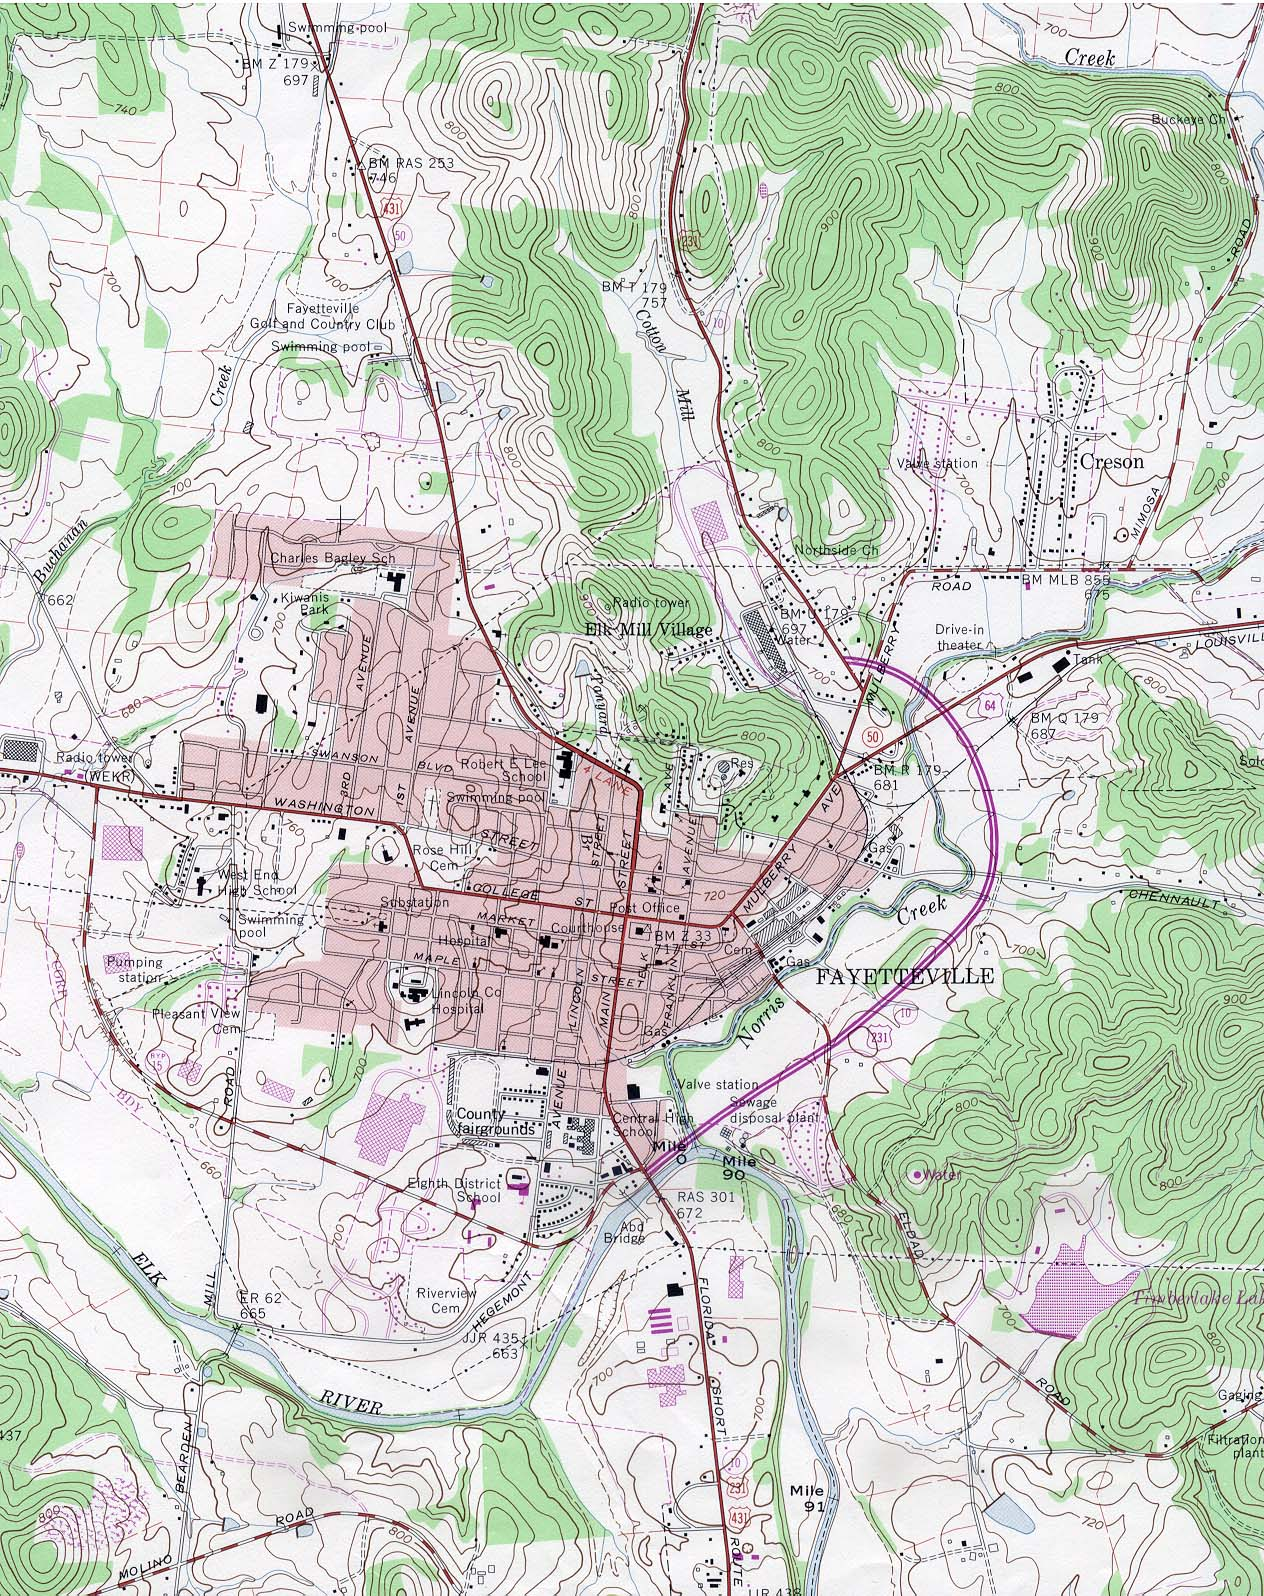 Fayetteville Topographic City Map, Tennessee, United States